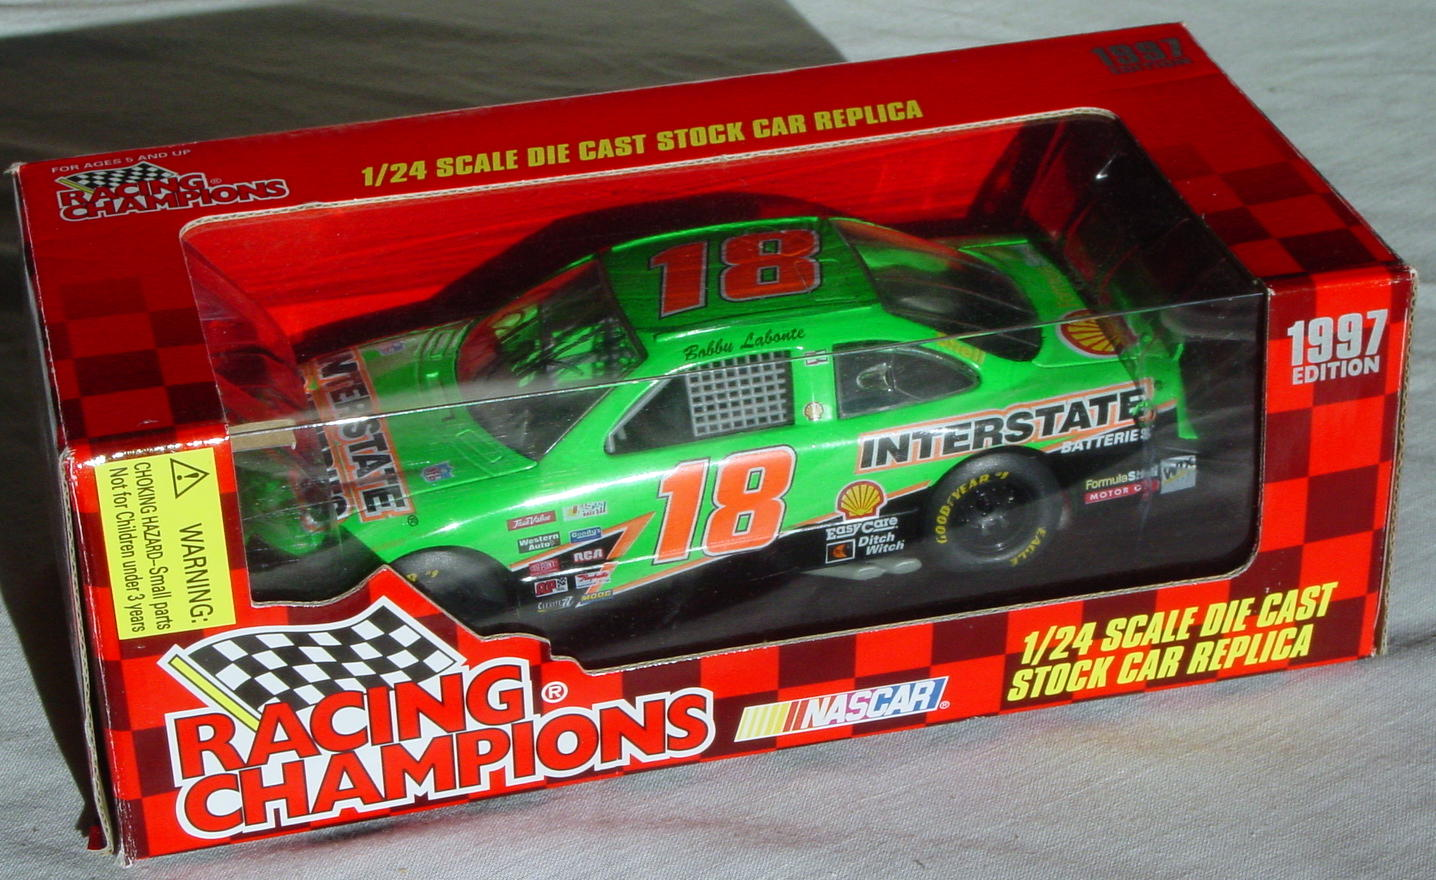 1_24 Scale - RC 1997 Edition Bobby LaBonte AUTOGRAPH!!!